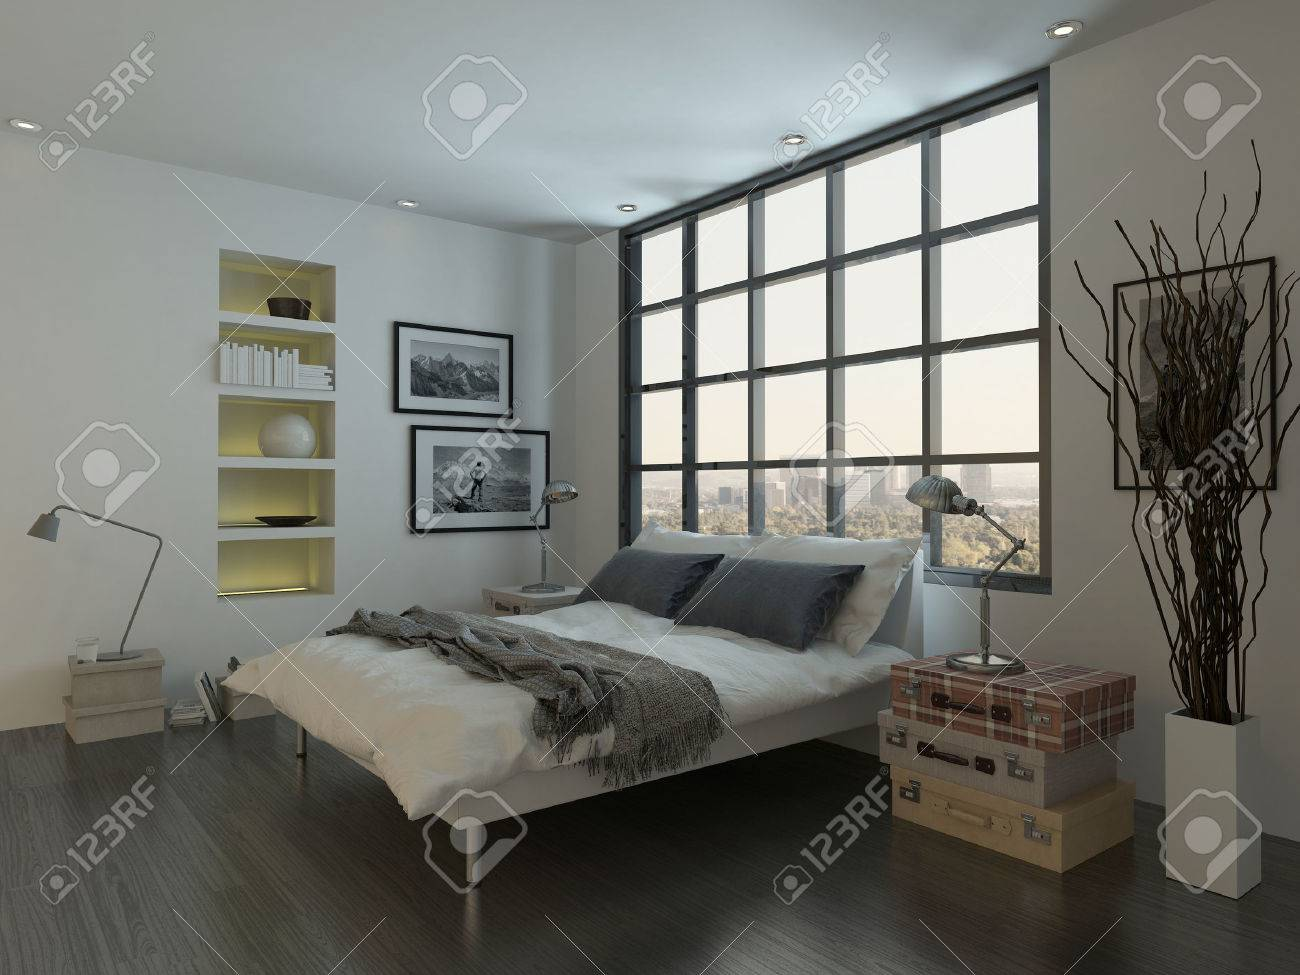 Modern Bedroom Interior With Double Bed In Front Of Huge Window Stock Photo Picture And Royalty Free Image Image 28772444